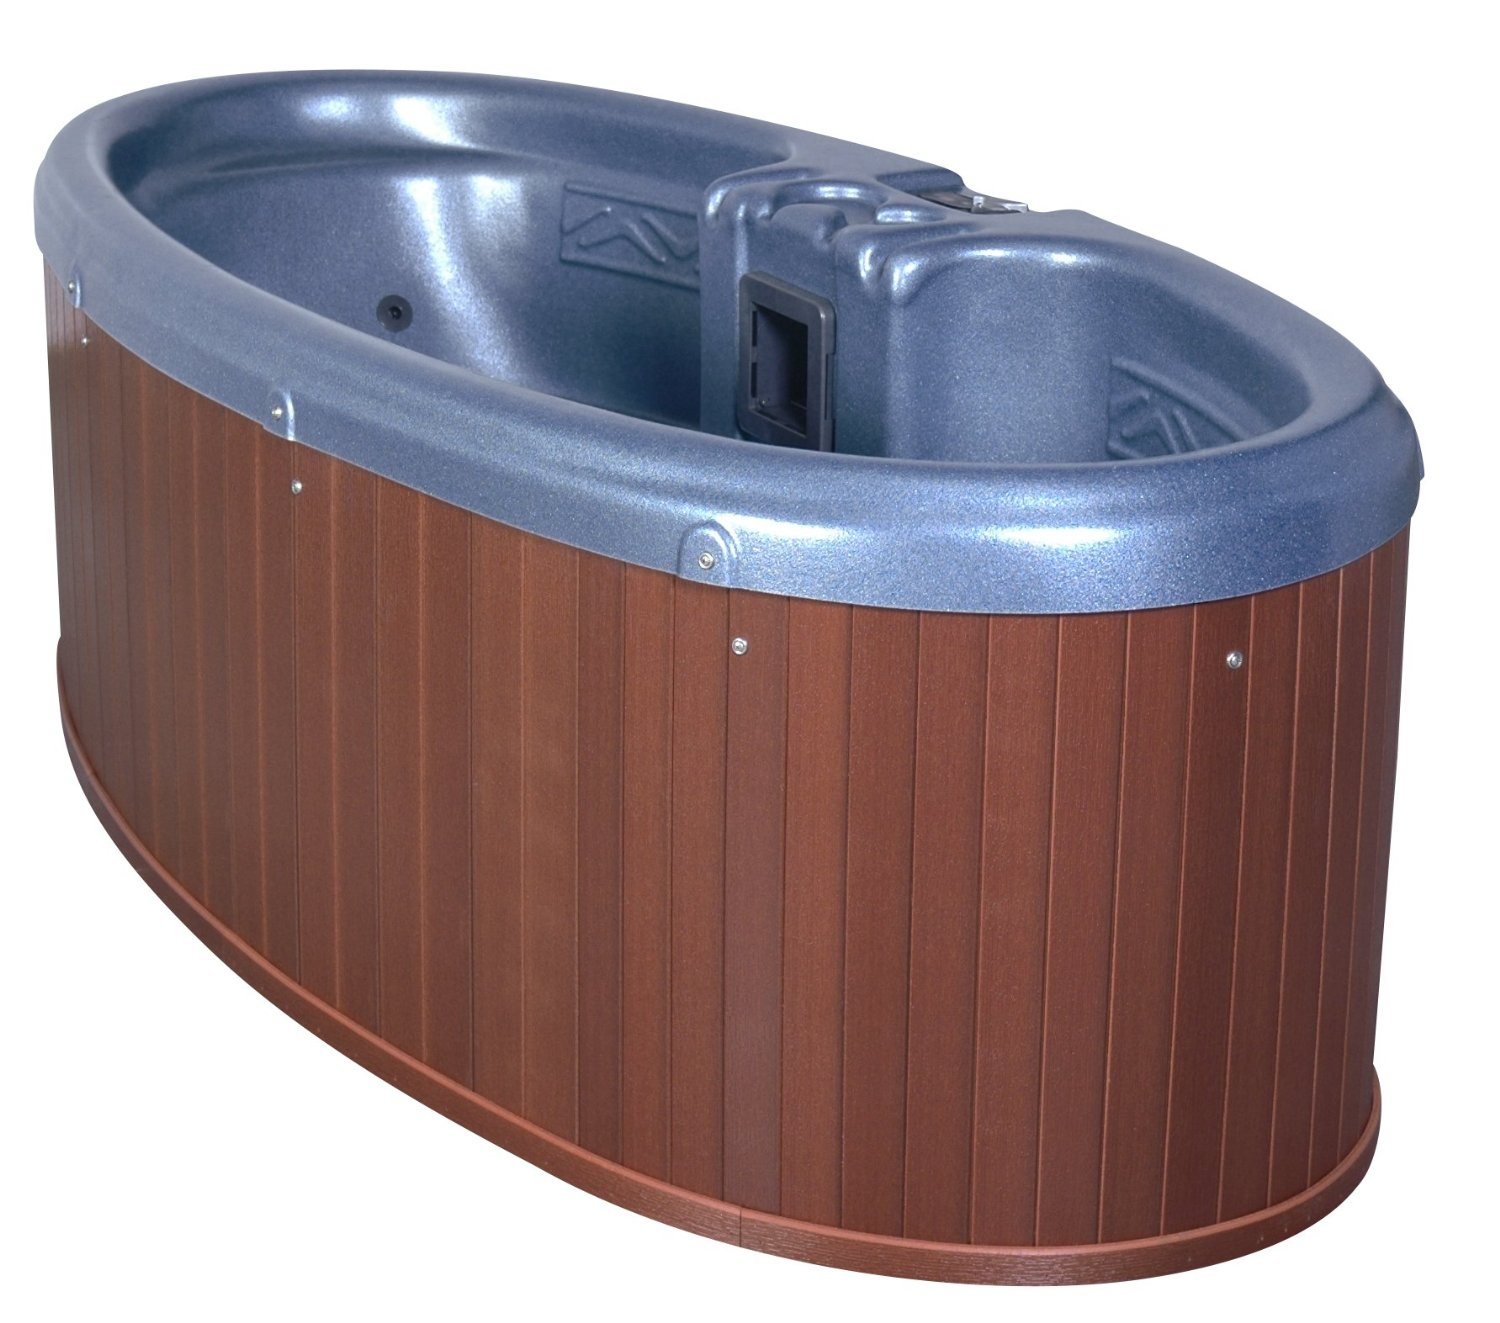 qca spas model 0 gemini plug and play hot tub 92 by 42 by. Black Bedroom Furniture Sets. Home Design Ideas